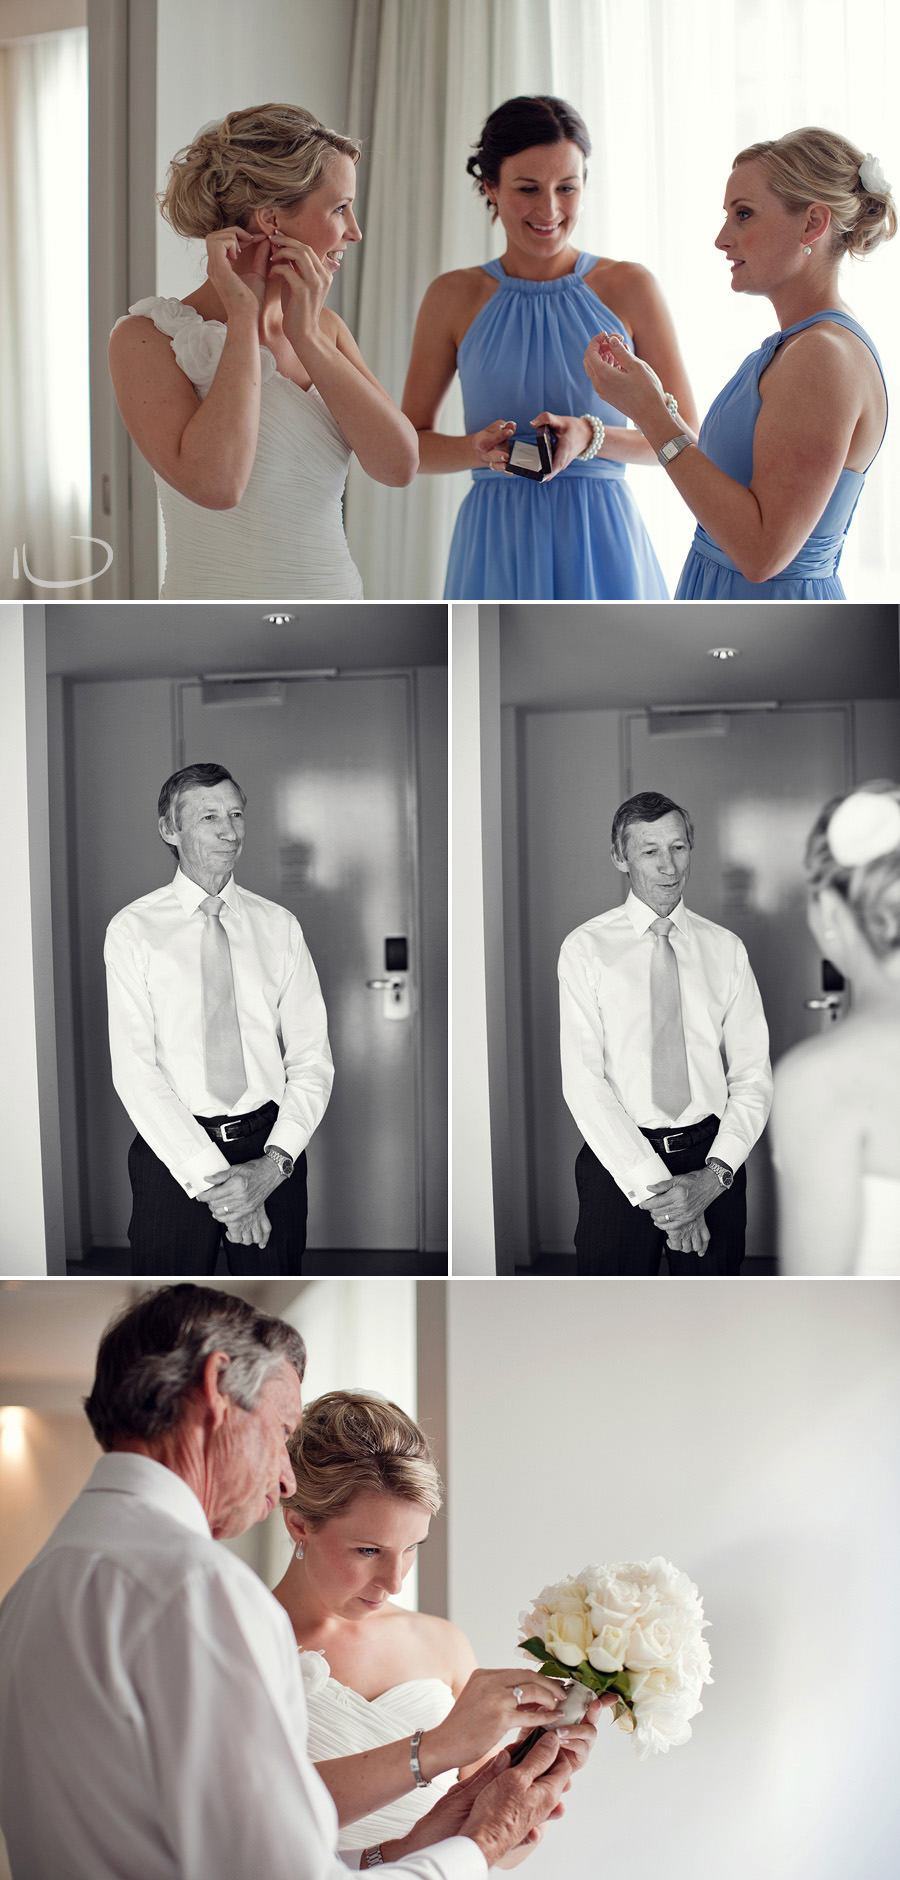 Hotel Realm Wedding Photographer: Father seeing bride